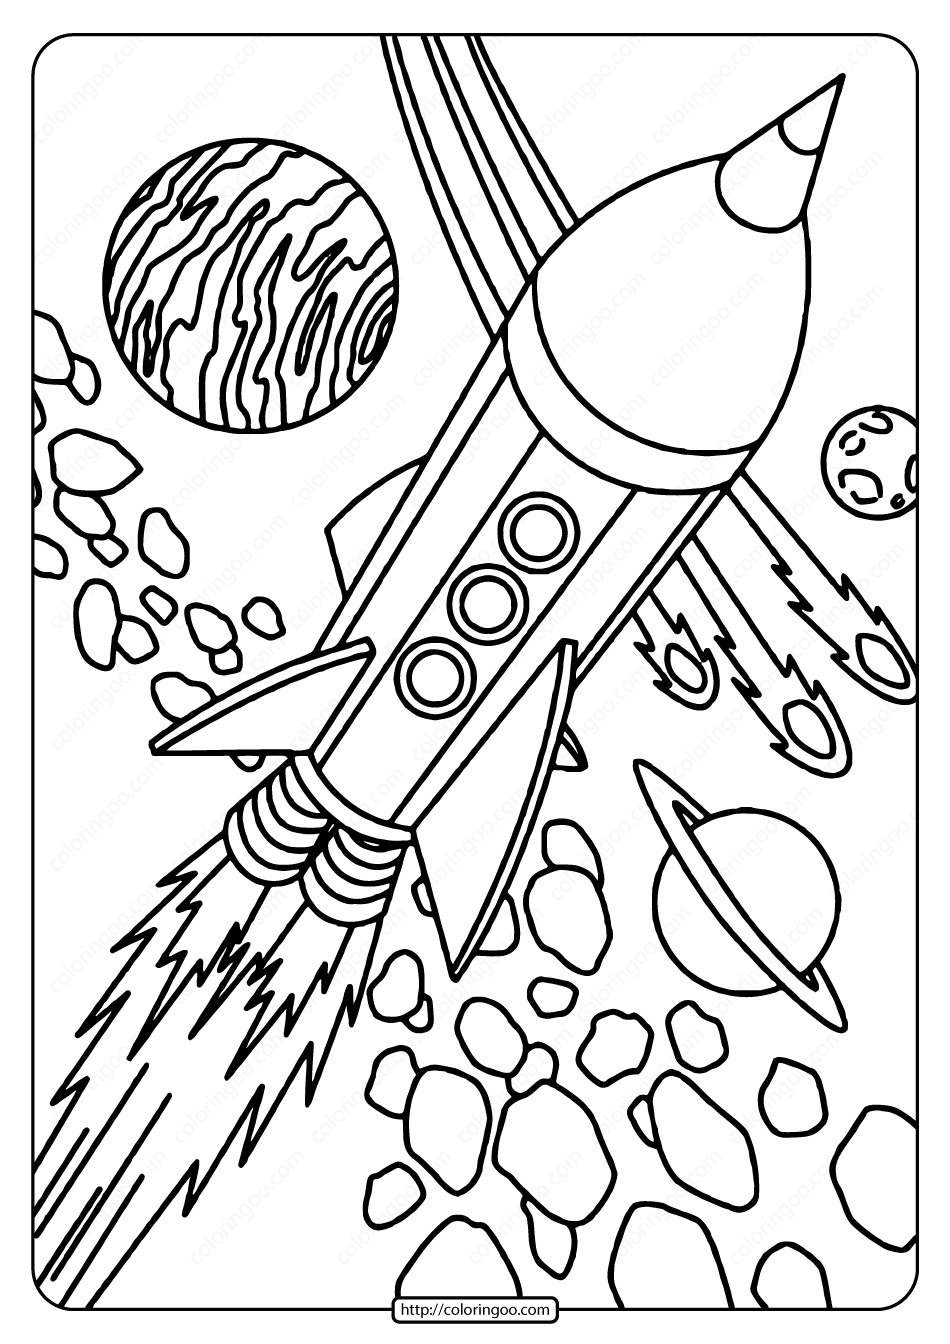 astronomy coloring pages spaceship to color in spacecraft coloring pages space coloring astronomy pages